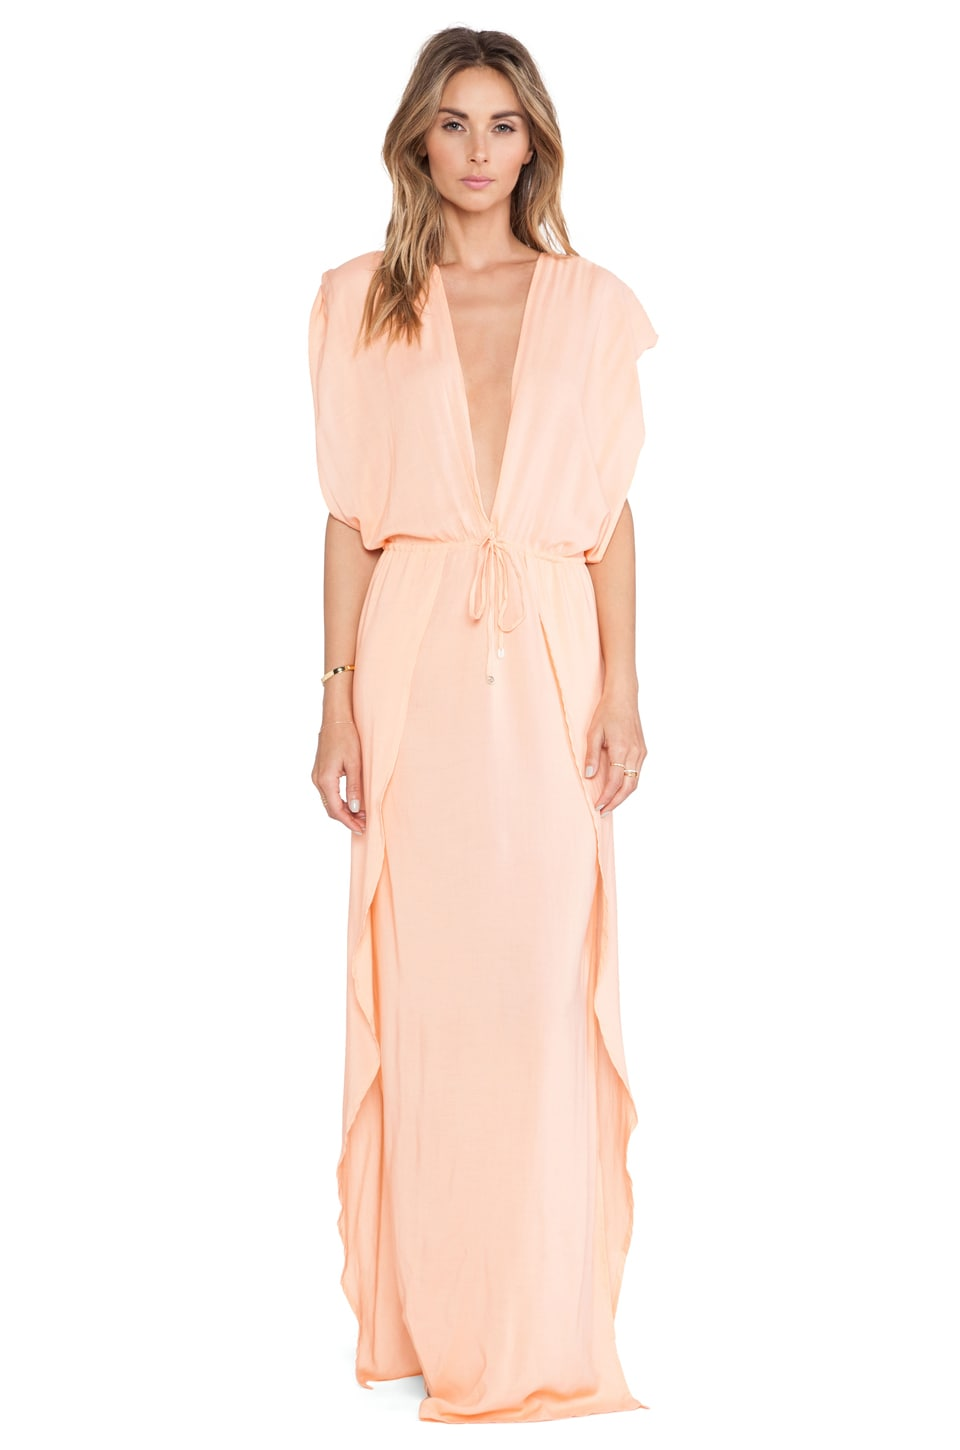 Indah Jade Maxi Dress in Peach